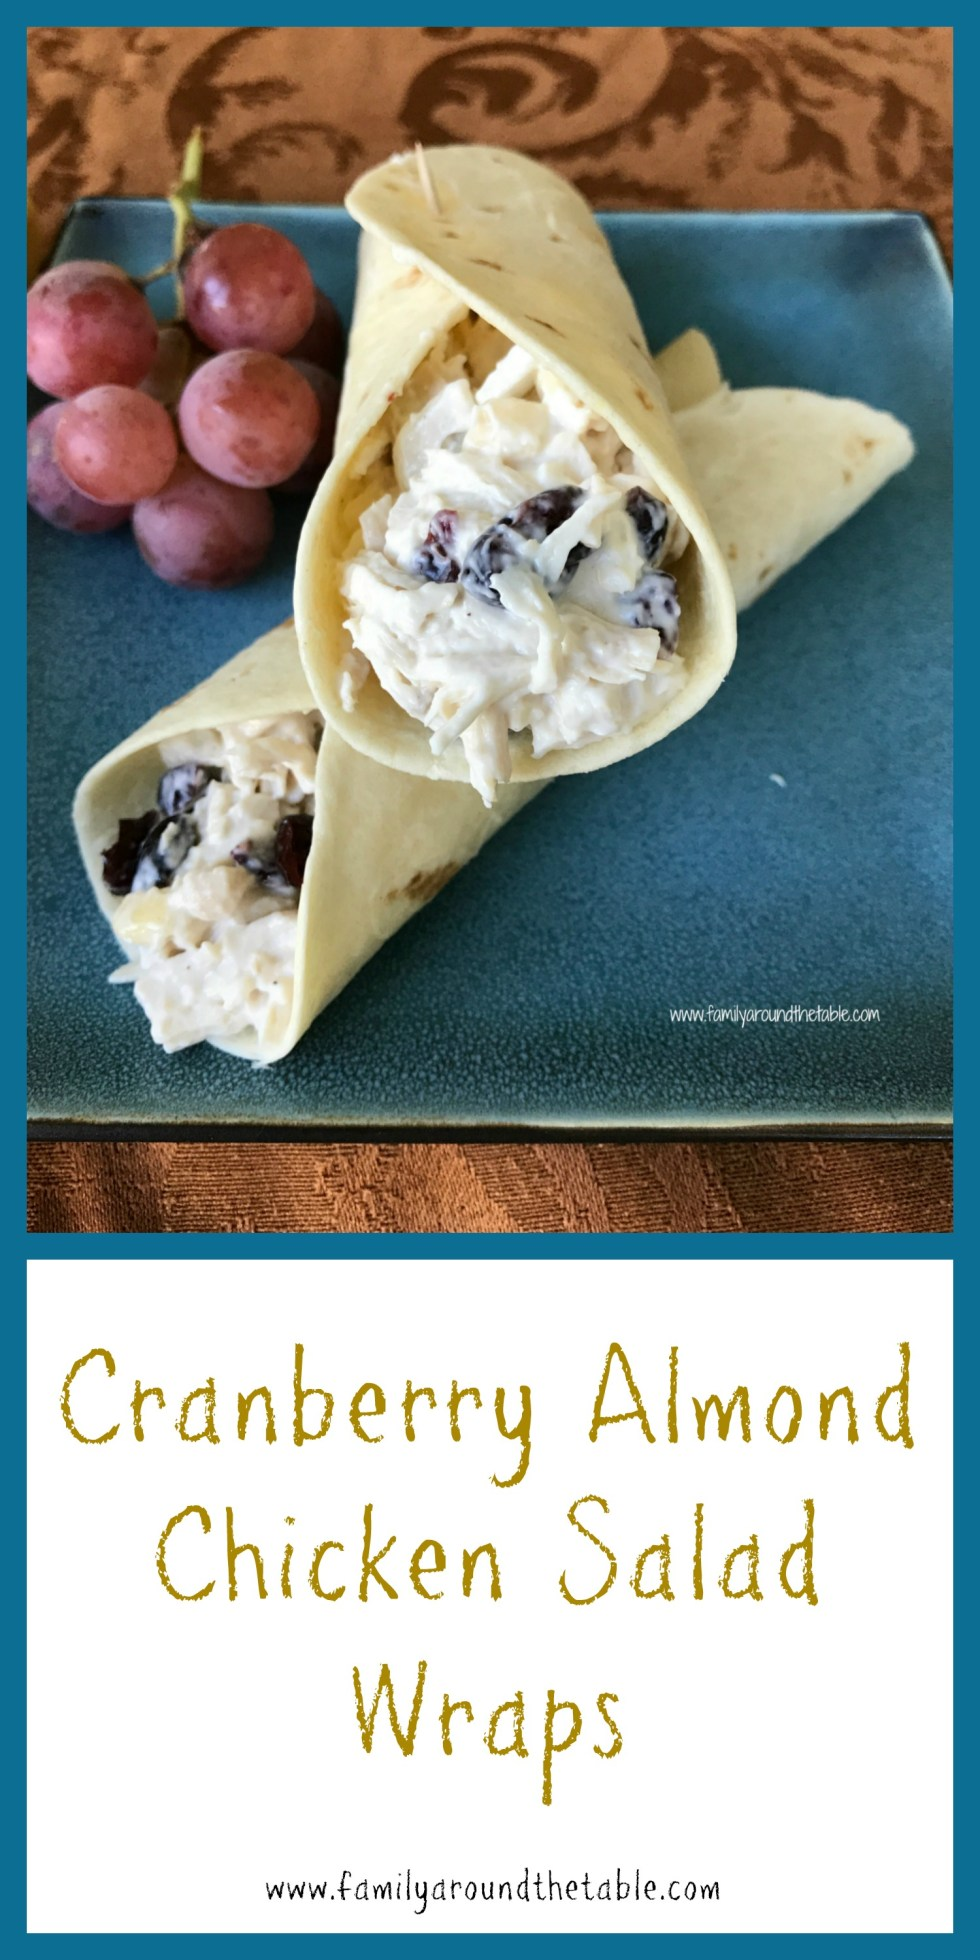 Cranberry almond chicken salad wrap.